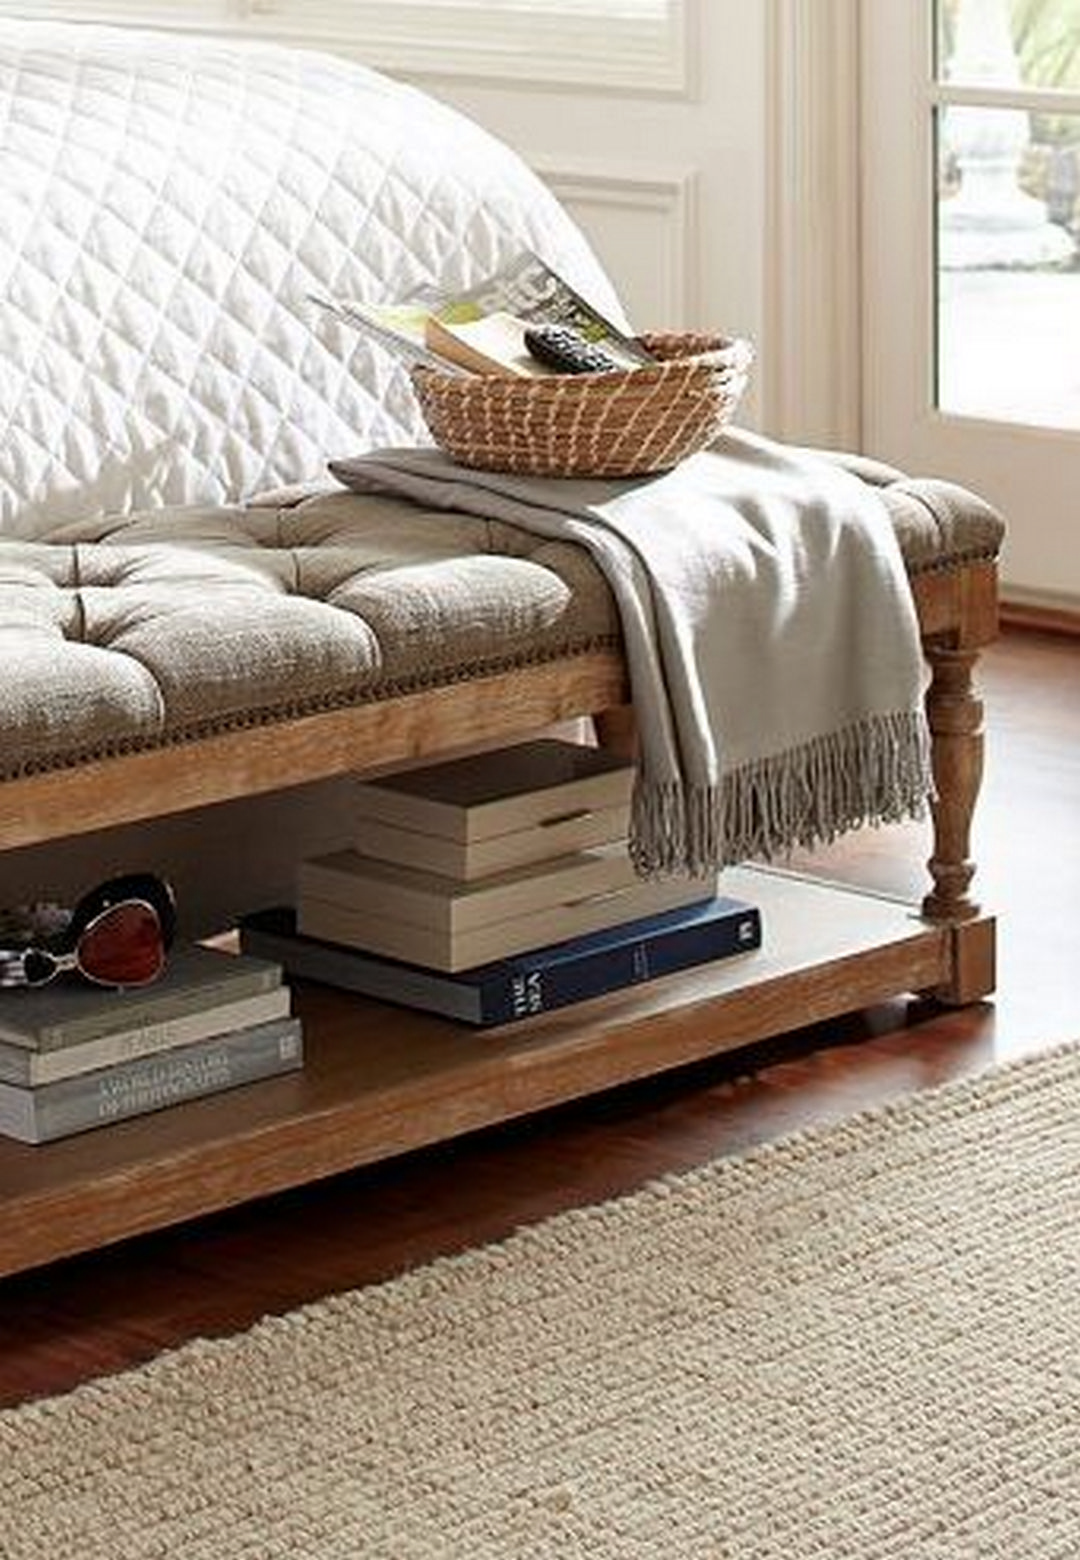 17 Stunning Diy Bedroom Storage Ideas Storage Bench Bedroom End Of Bed Bench Upholstered Storage Bench